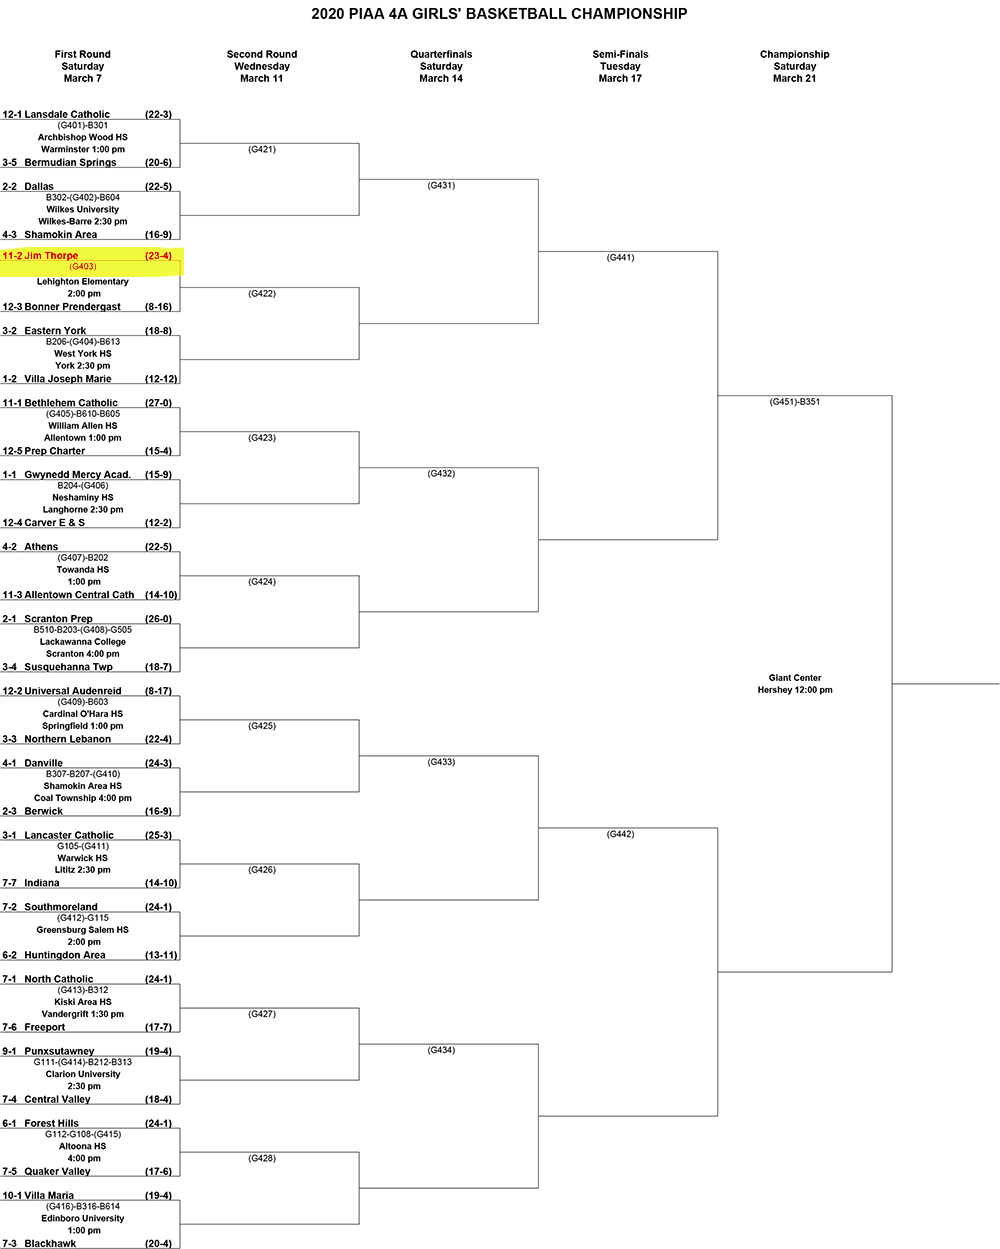 2020 PIAA 4A Girls Basketball bracket